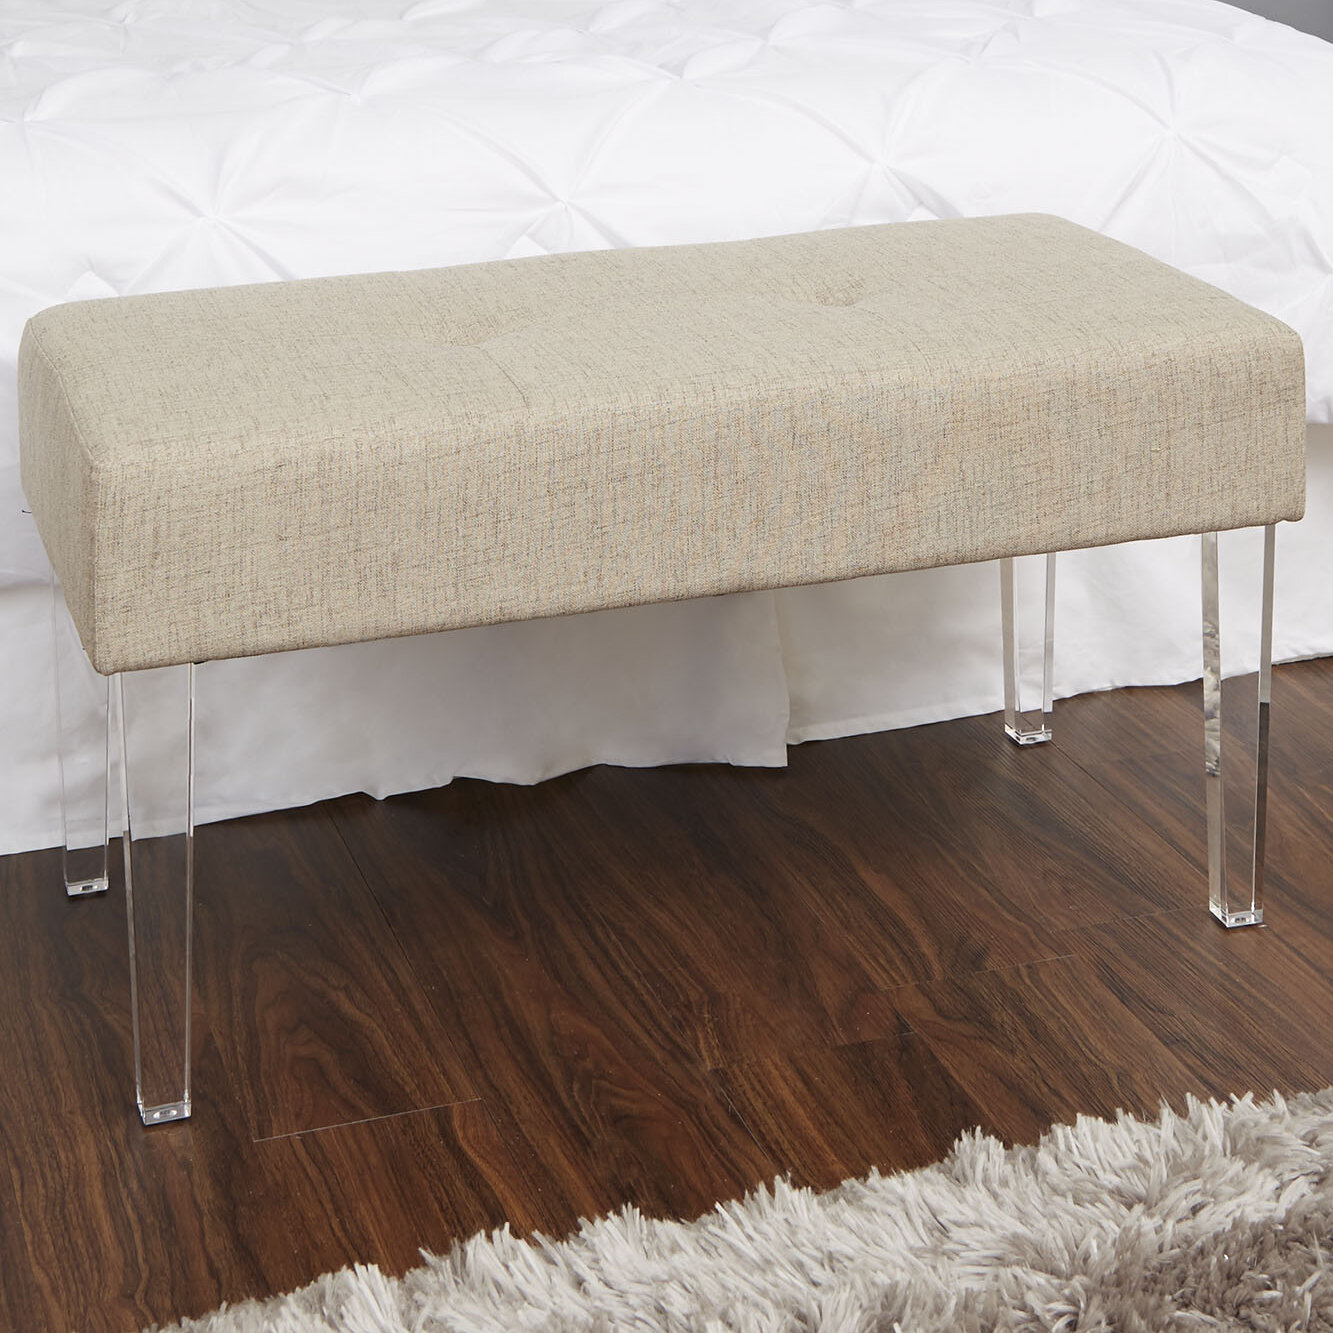 Ivy bronx amey acrylic leg rectangular upholstered bench wayfair